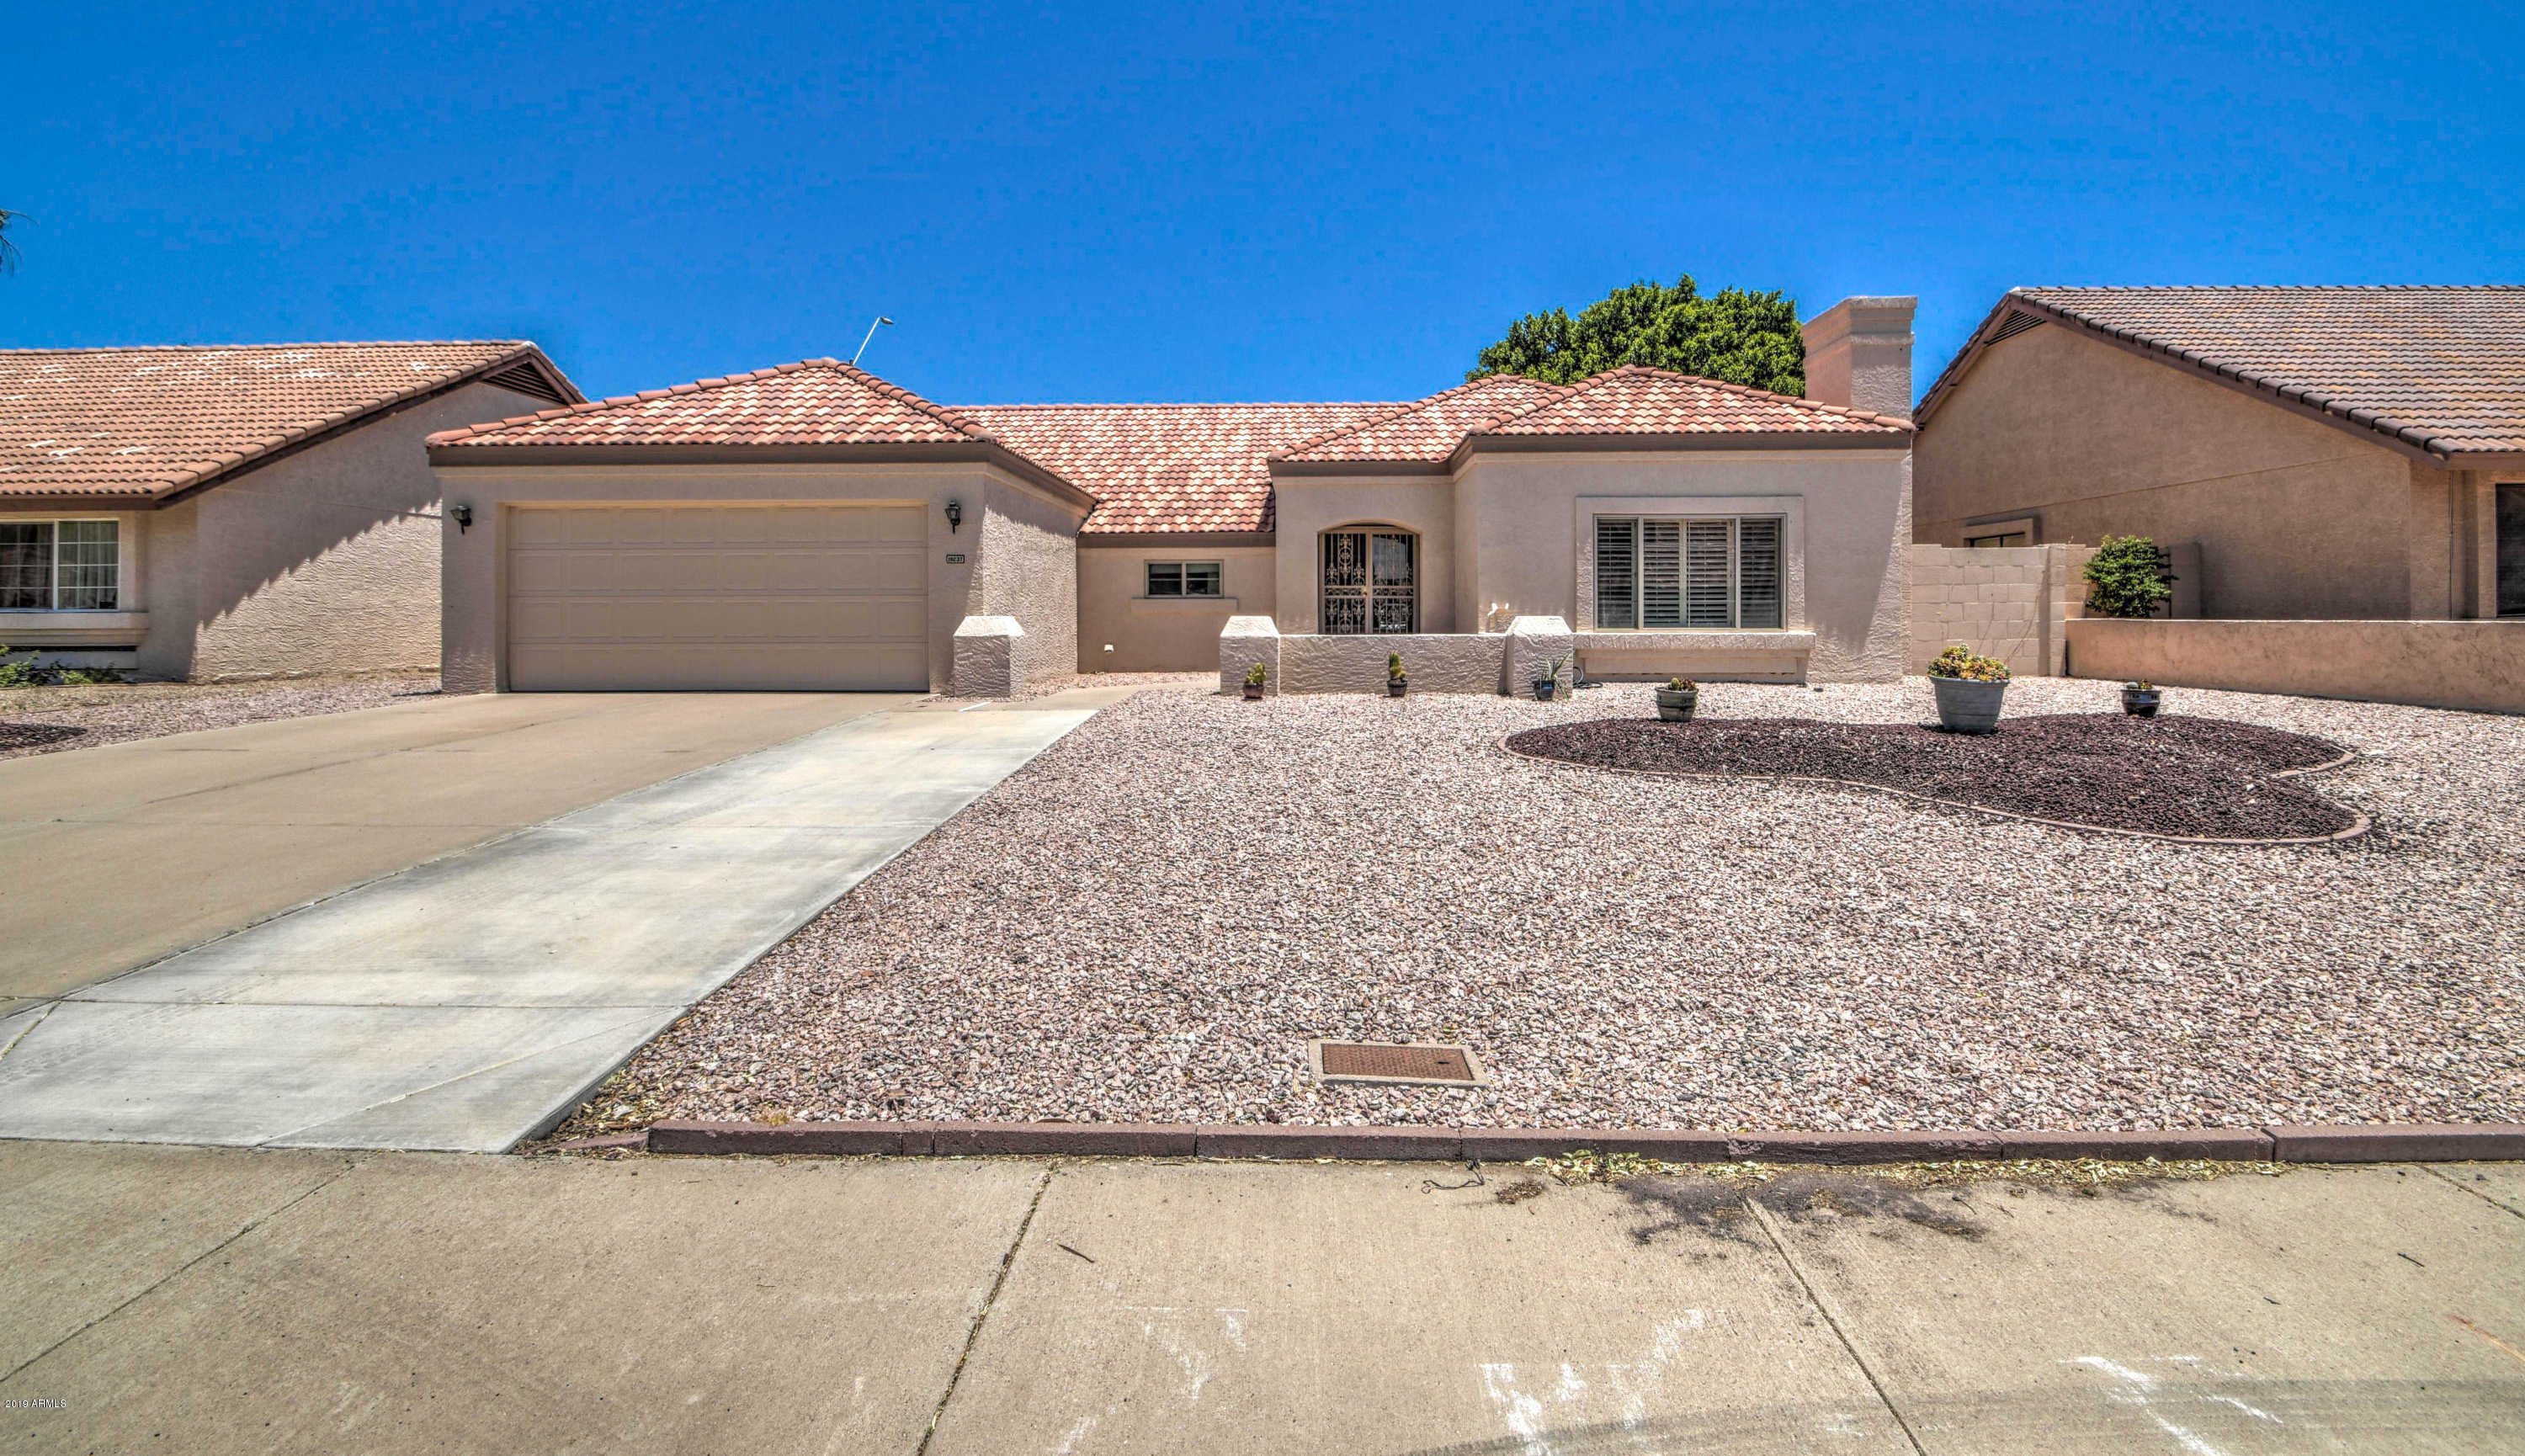 $315,000 - 3Br/2Ba - Home for Sale in Arrowhead Ranch Two, Glendale